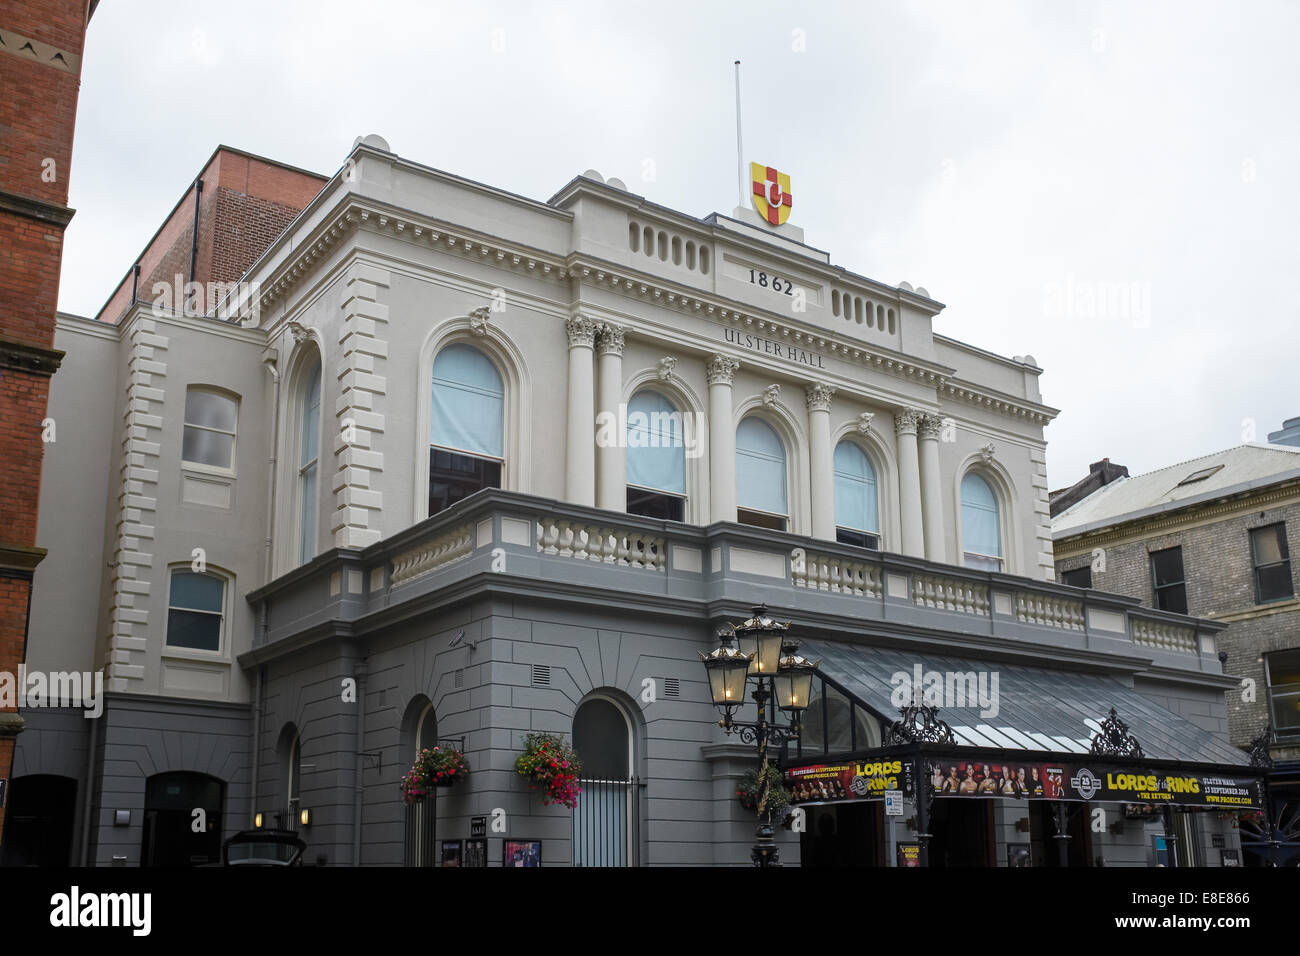 The exterior of Ulster Hall in Belfast city centre - Stock Image